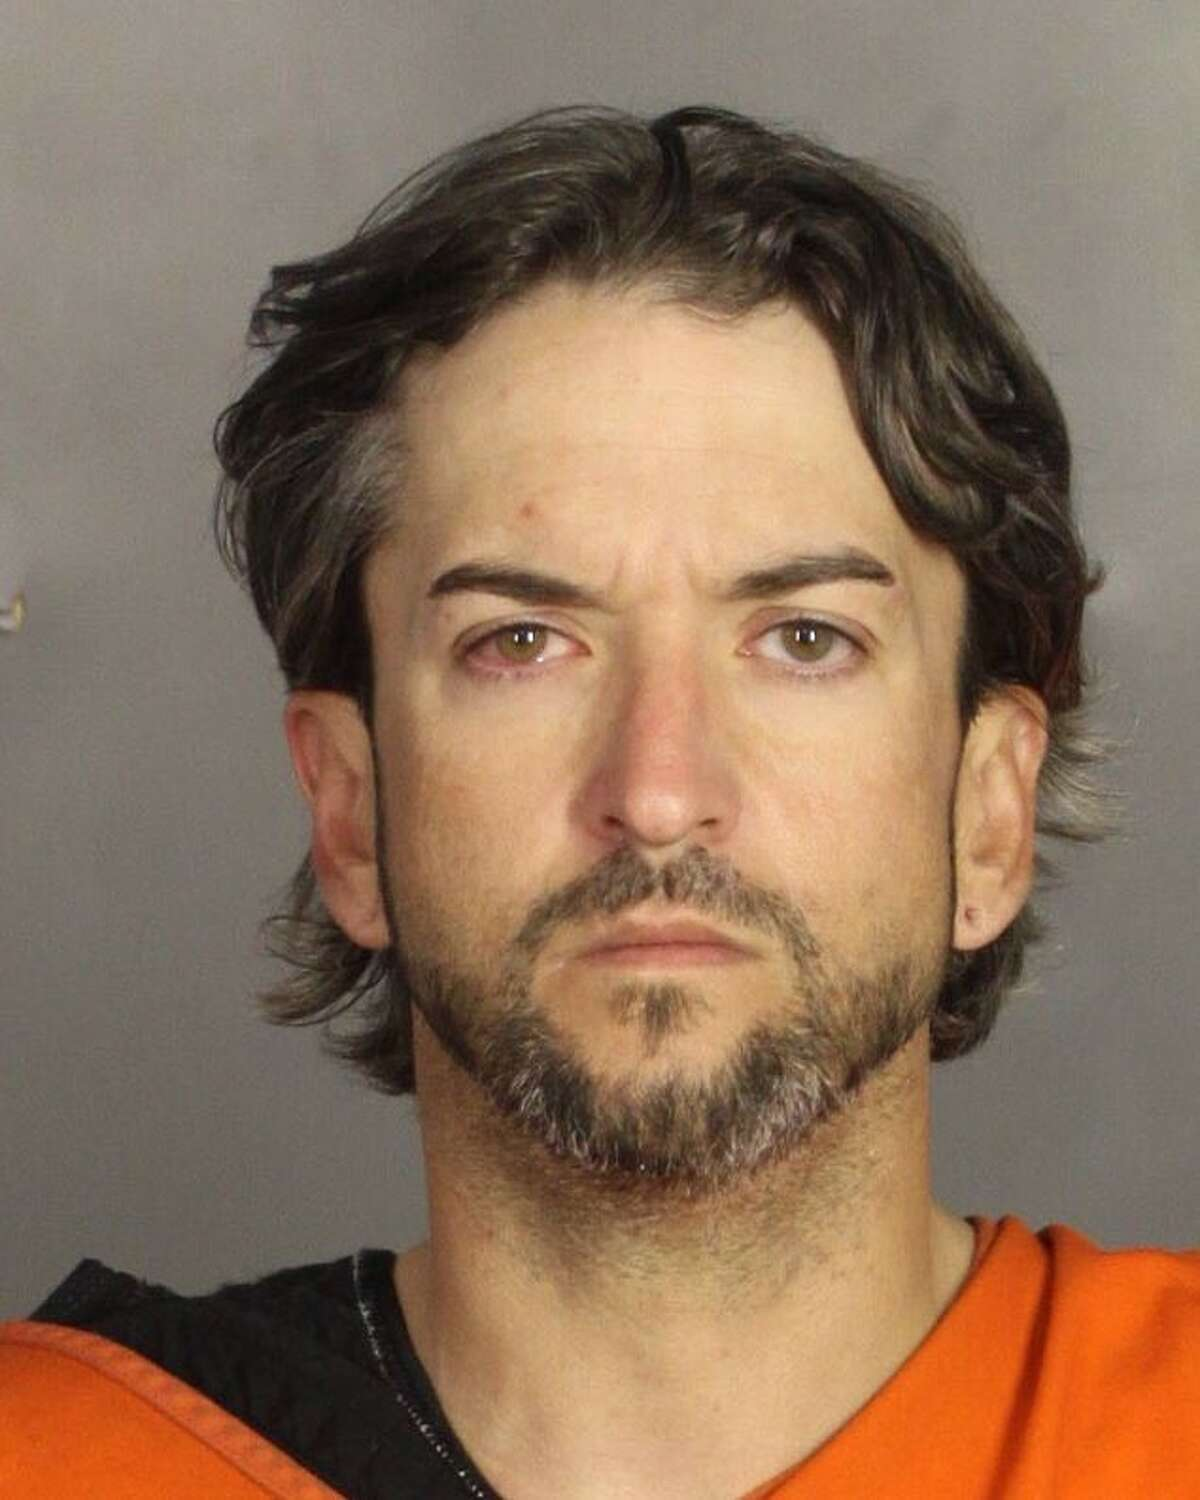 Marcus Pilkington, 37, was booked and charged with engaging in organized criminal activity in connection to a shooting involving motorcycle gangs at a Twin Peaks restaurant in Waco at around noon on May 17, 2015. The shooting left nine dead and 18 injured.